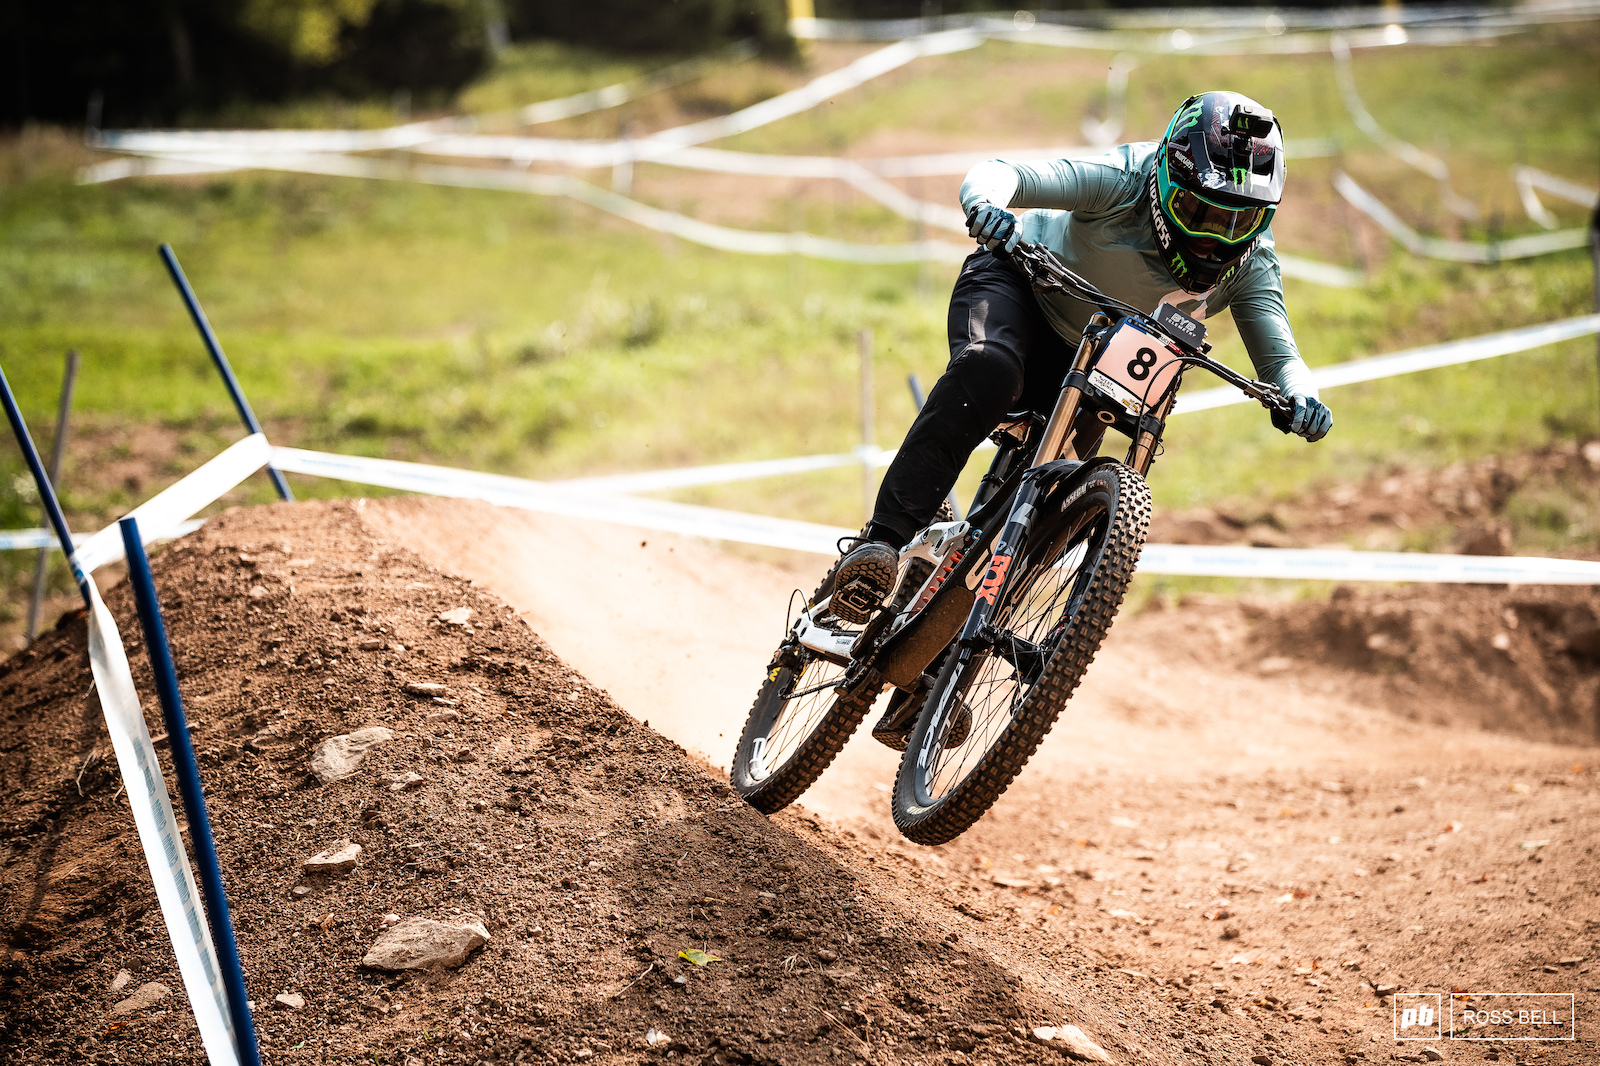 Marine Cabirou powering out of one of the top turns.